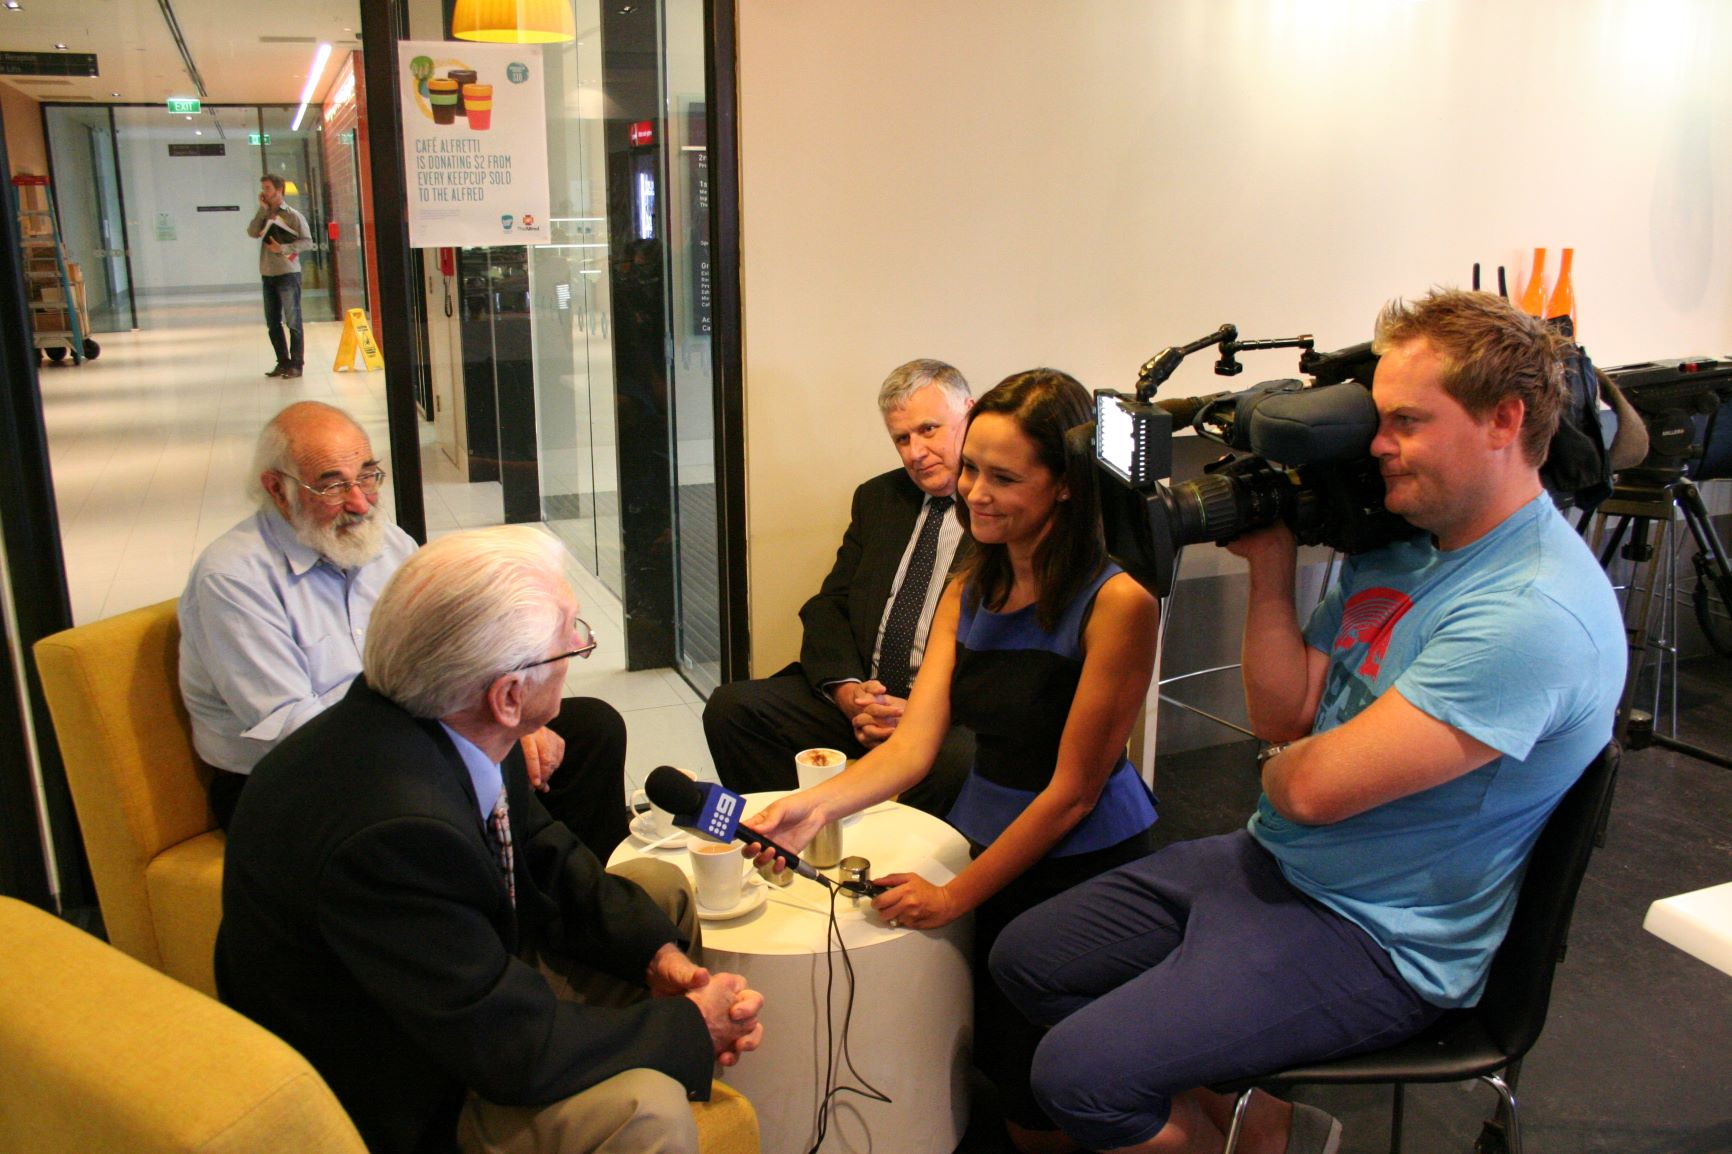 Older grey haired gent being interviewed by a news crew inside a cafe.